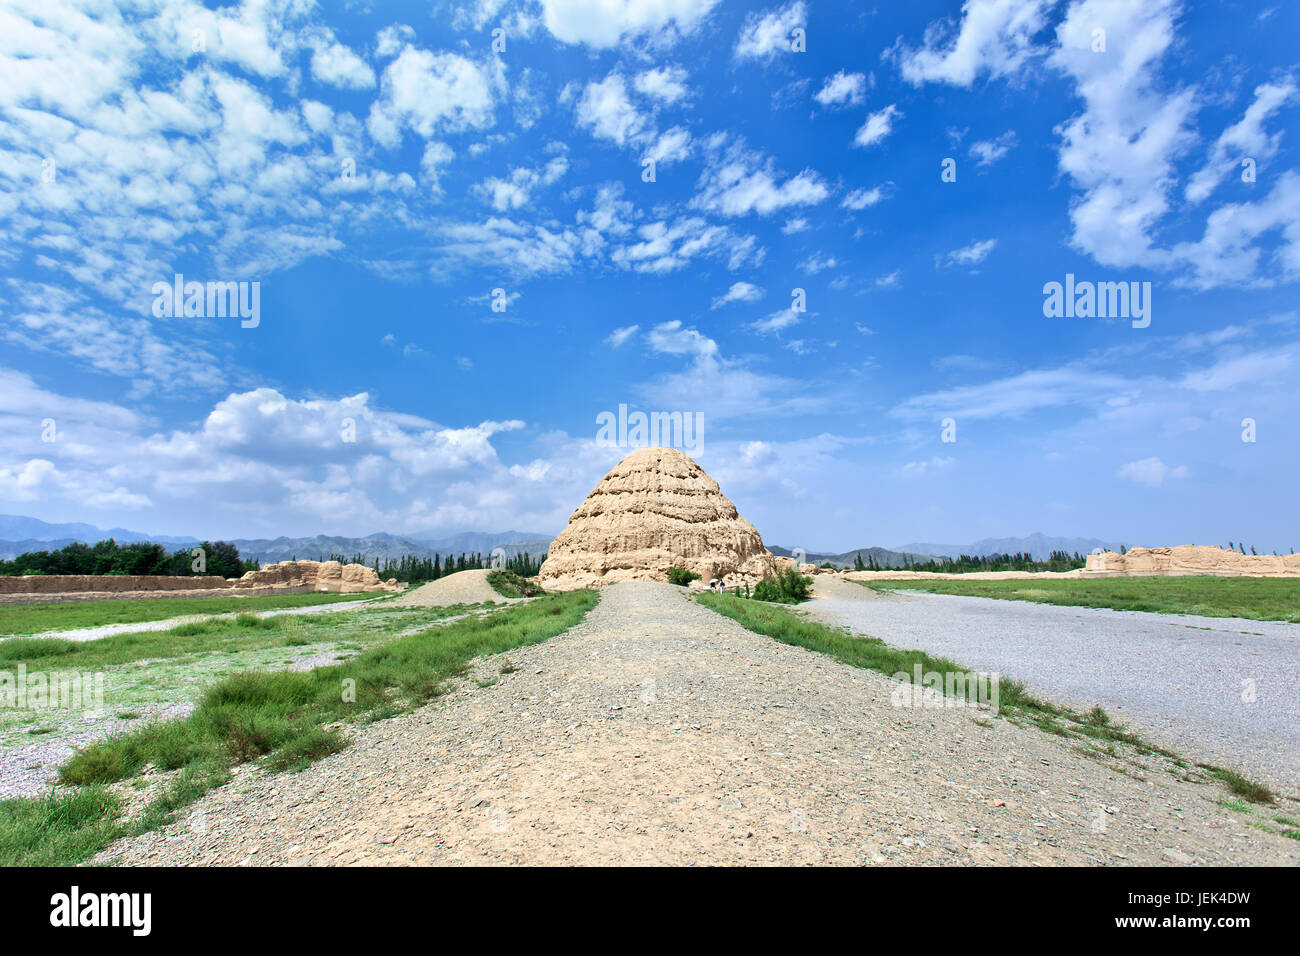 The West Xia Imperial Tombs in Yinchuan, Ningxia Province, China Stock Photo